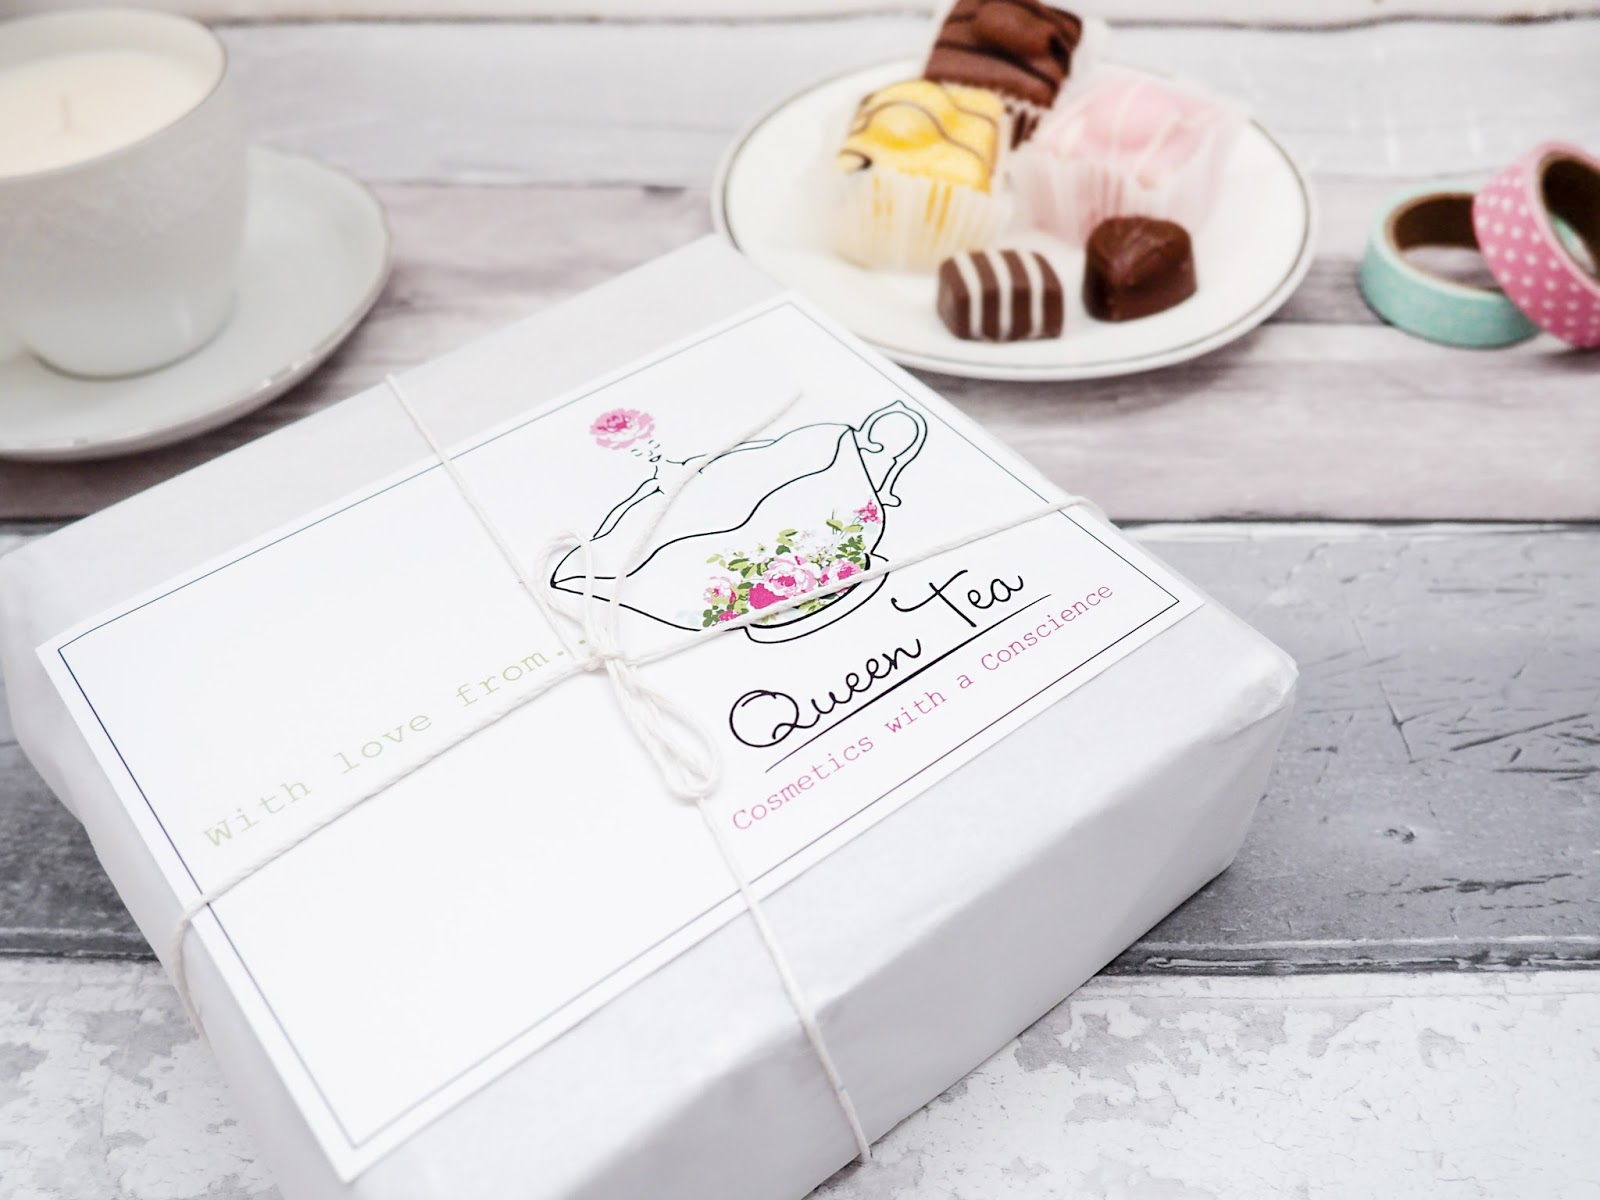 Queen Tea Morning Cuppa Detox Box Review